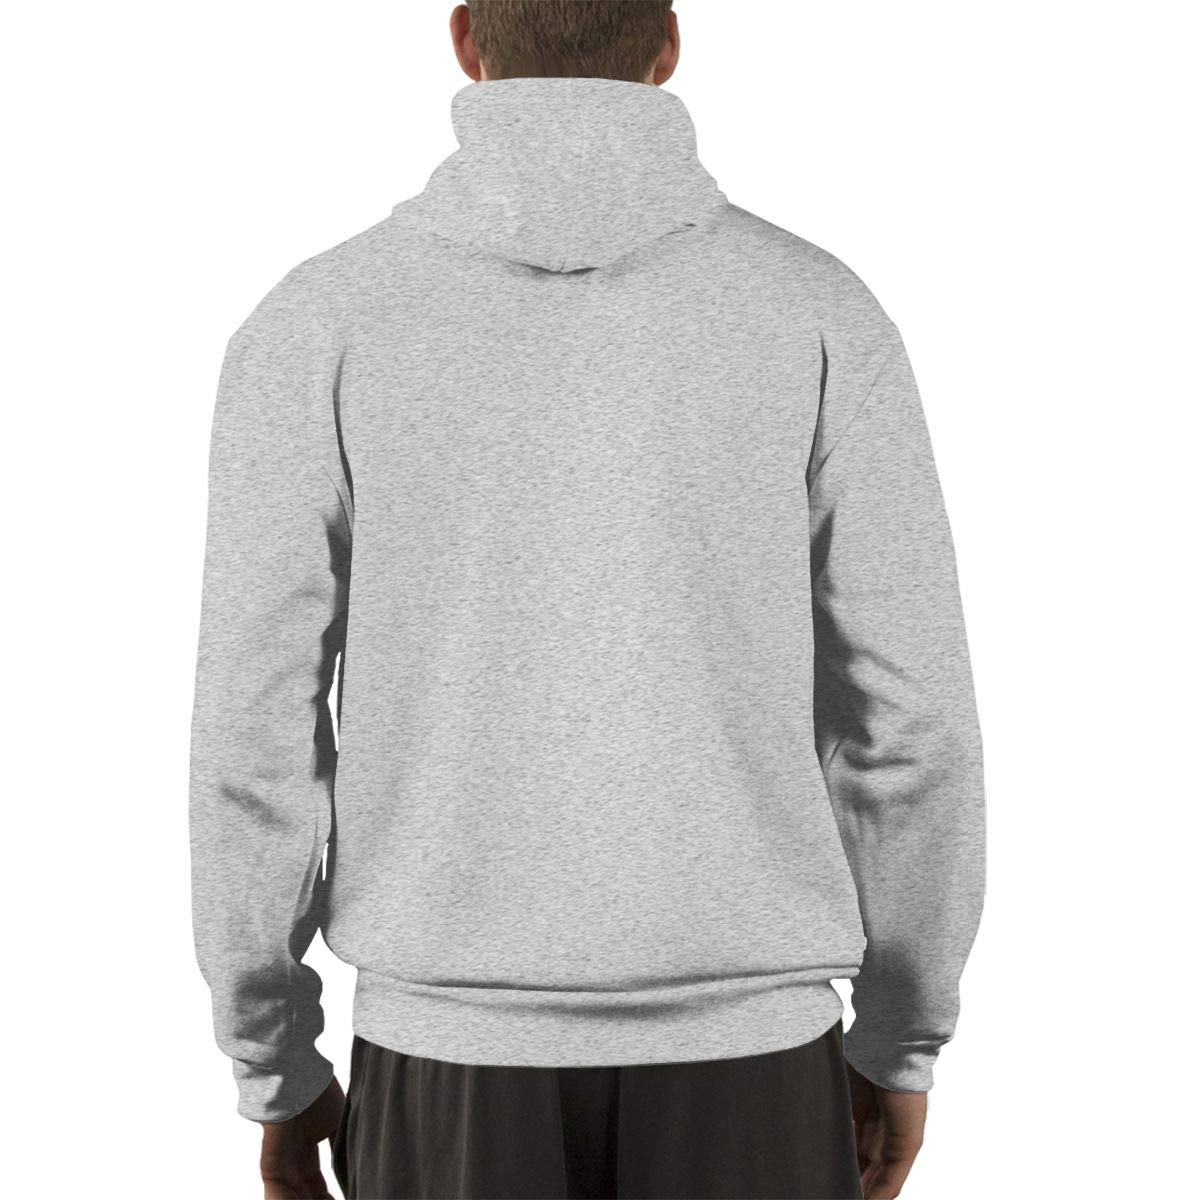 Black Ops Hoodie Mens Casual Workout Hoody Sweatshirt Hoodie Sweater with Drawstring Hood Prestige